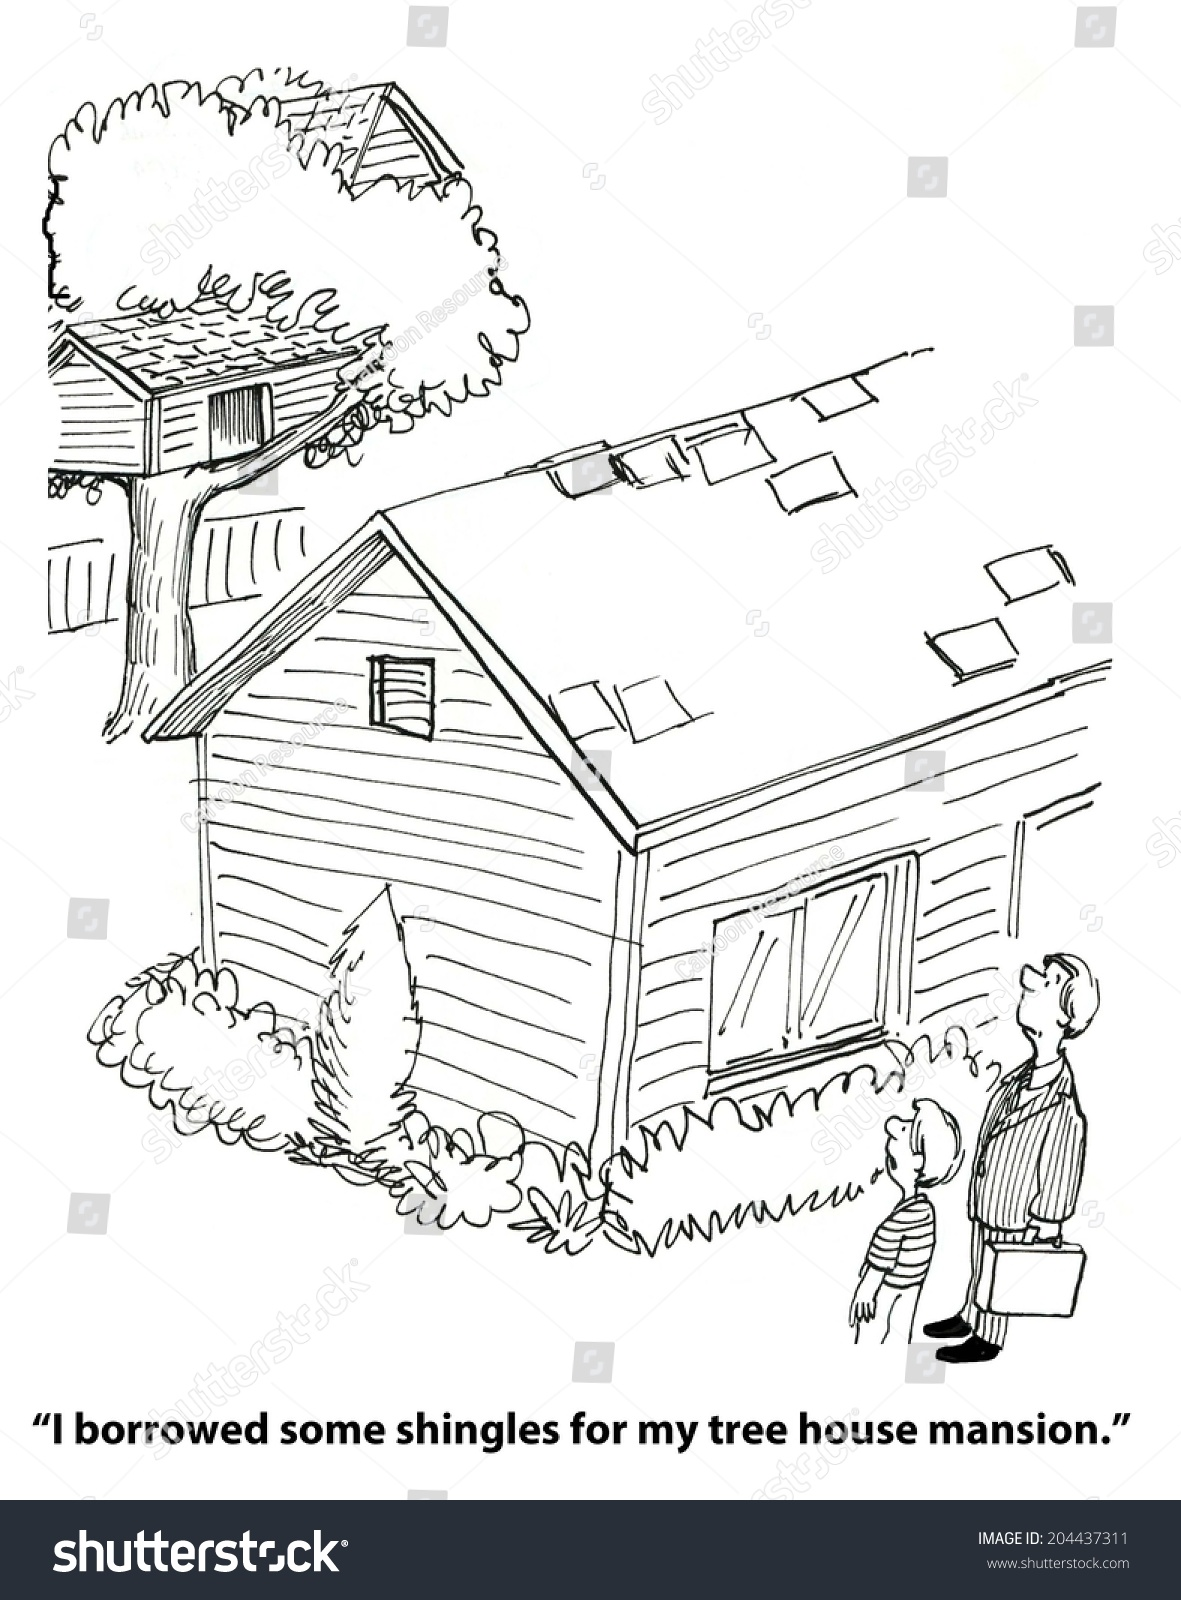 son used shingles his tree house stock illustration 204437311